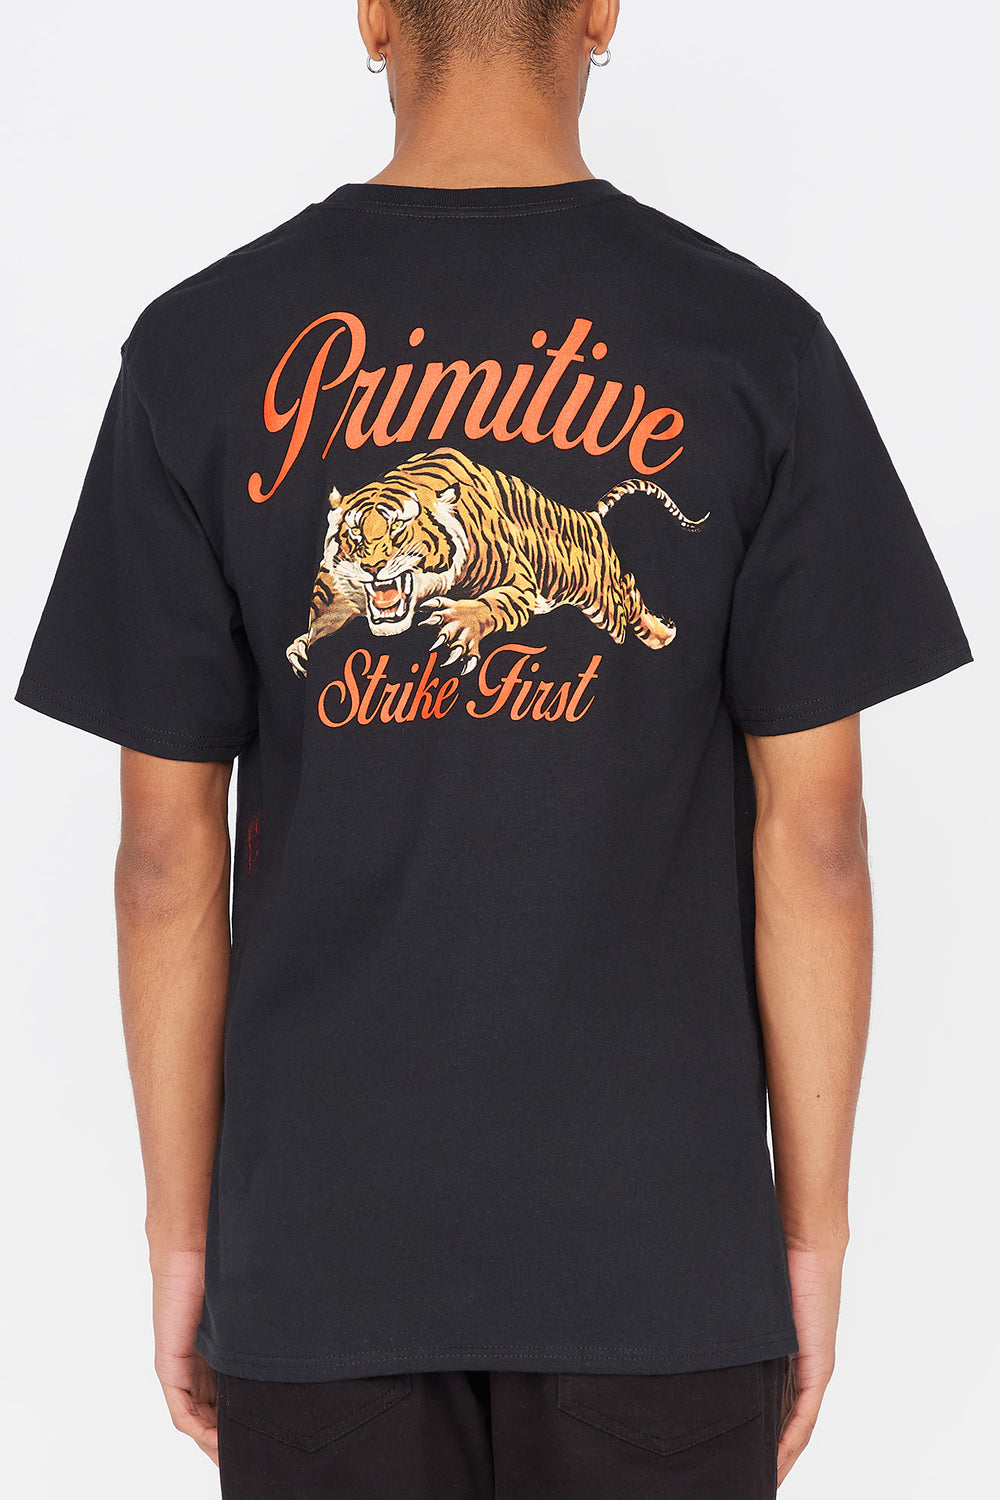 T-Shirt Untamed Primitive Homme Noir